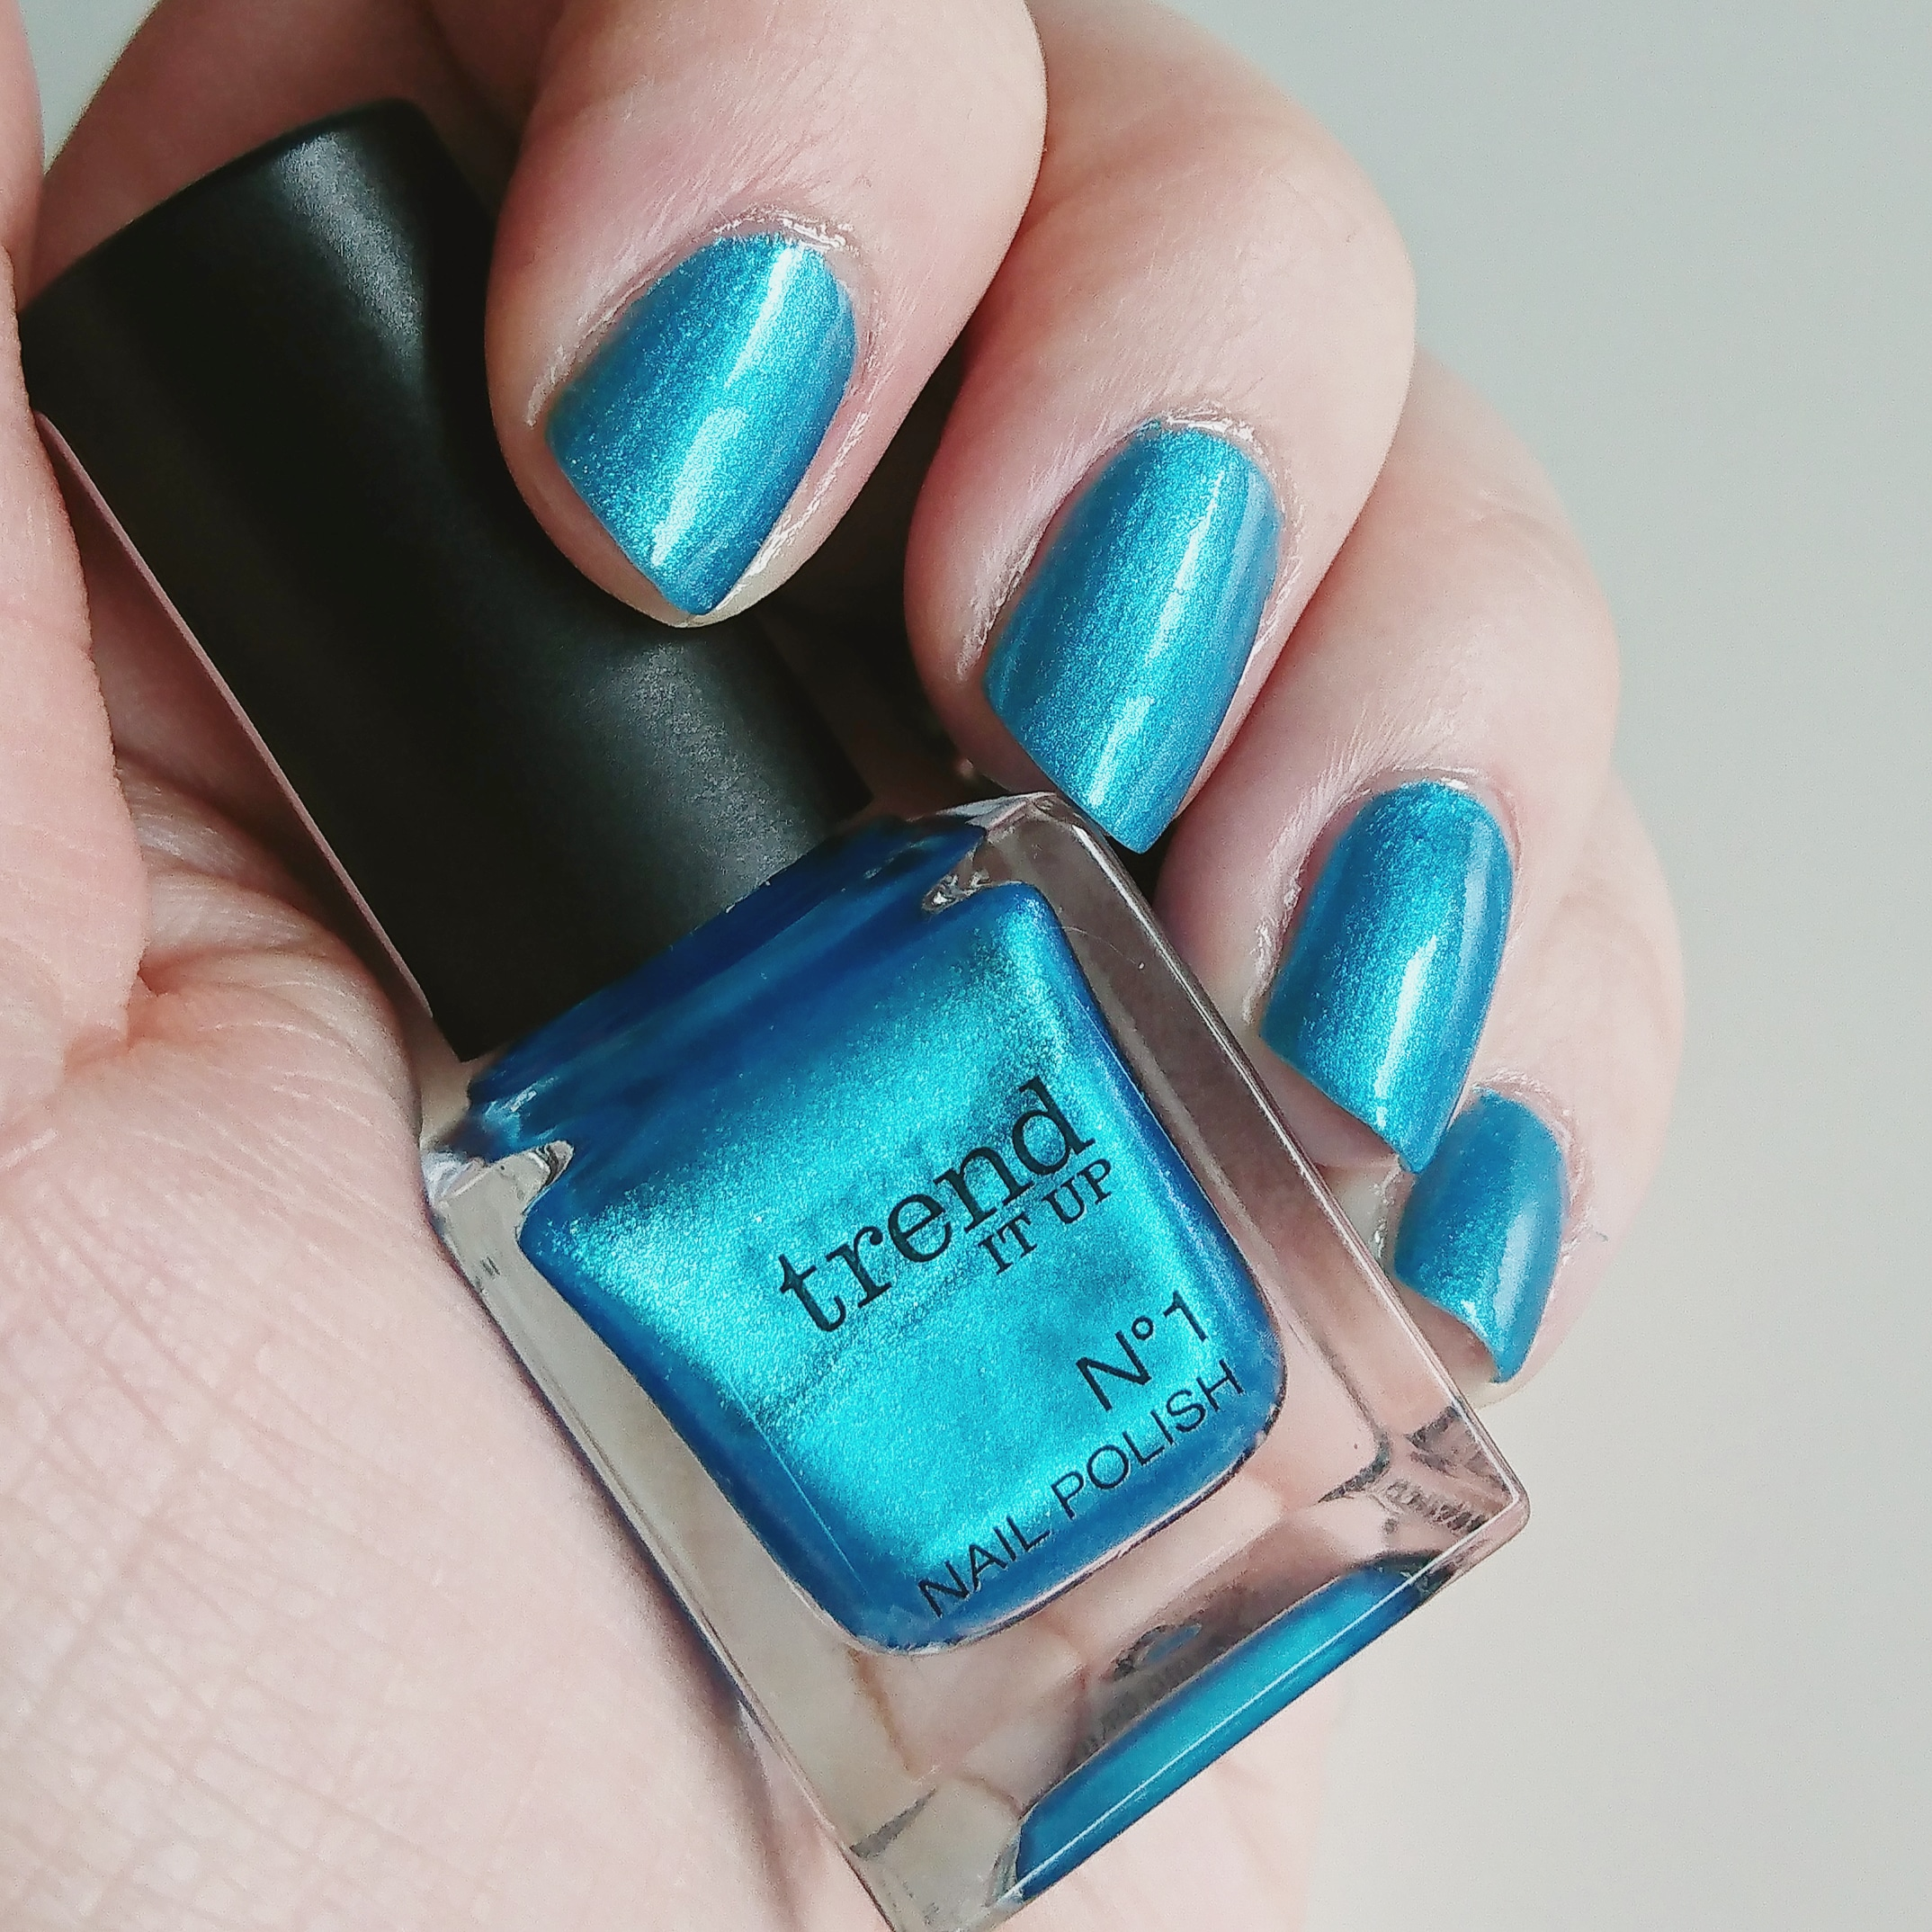 trend it up - no1 nail polish - 211